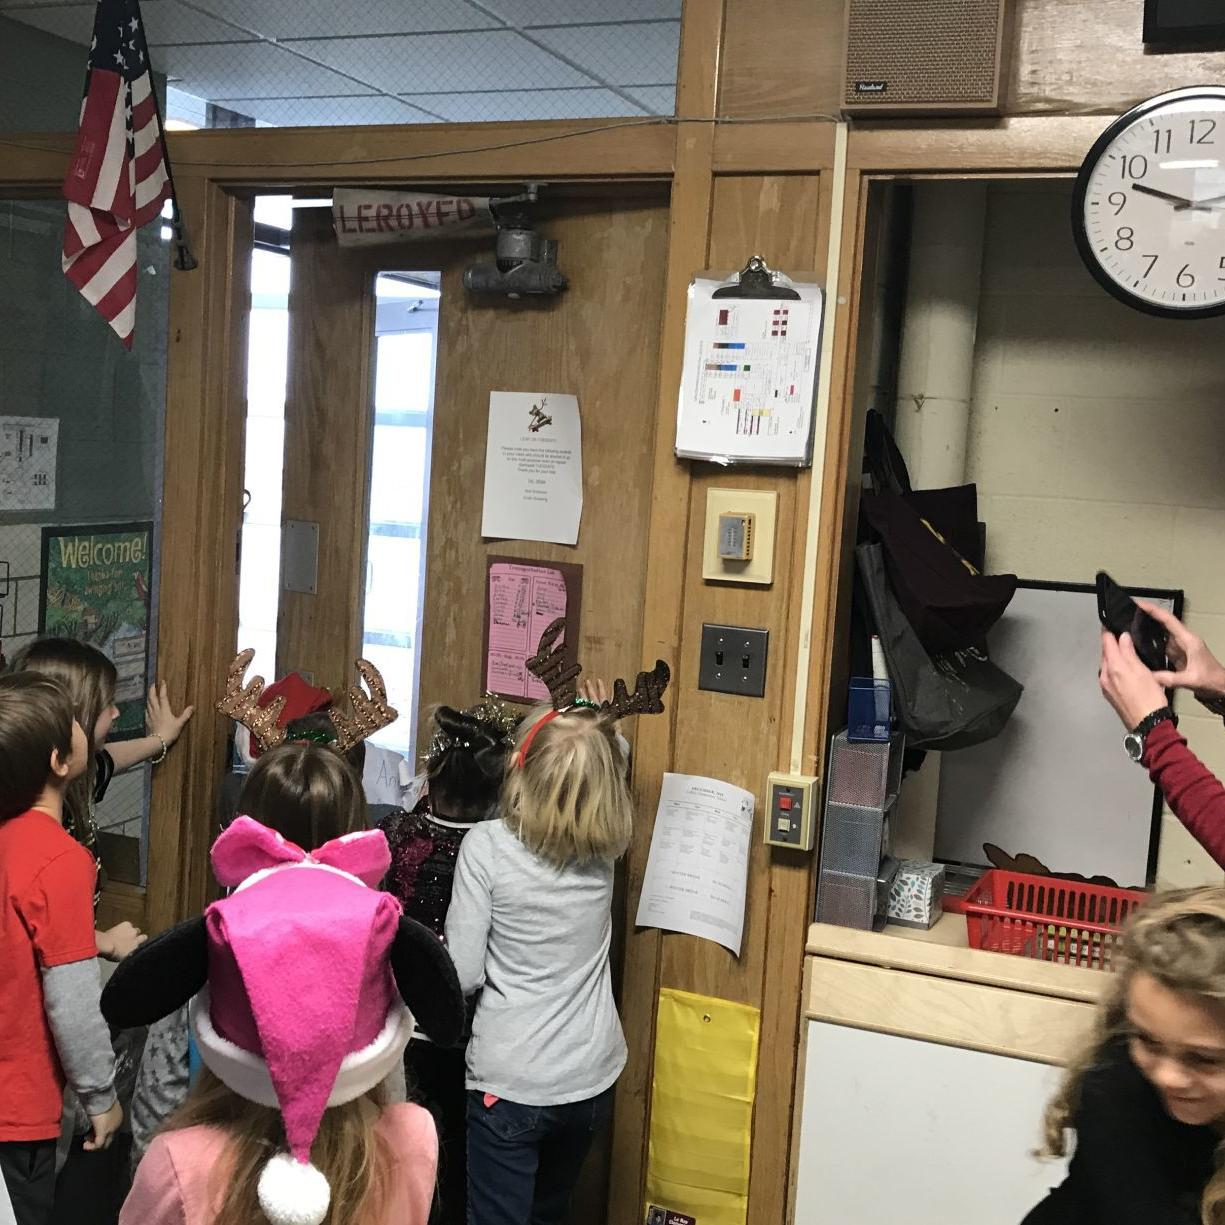 LeRoy fire district donates old hose to school for classroom